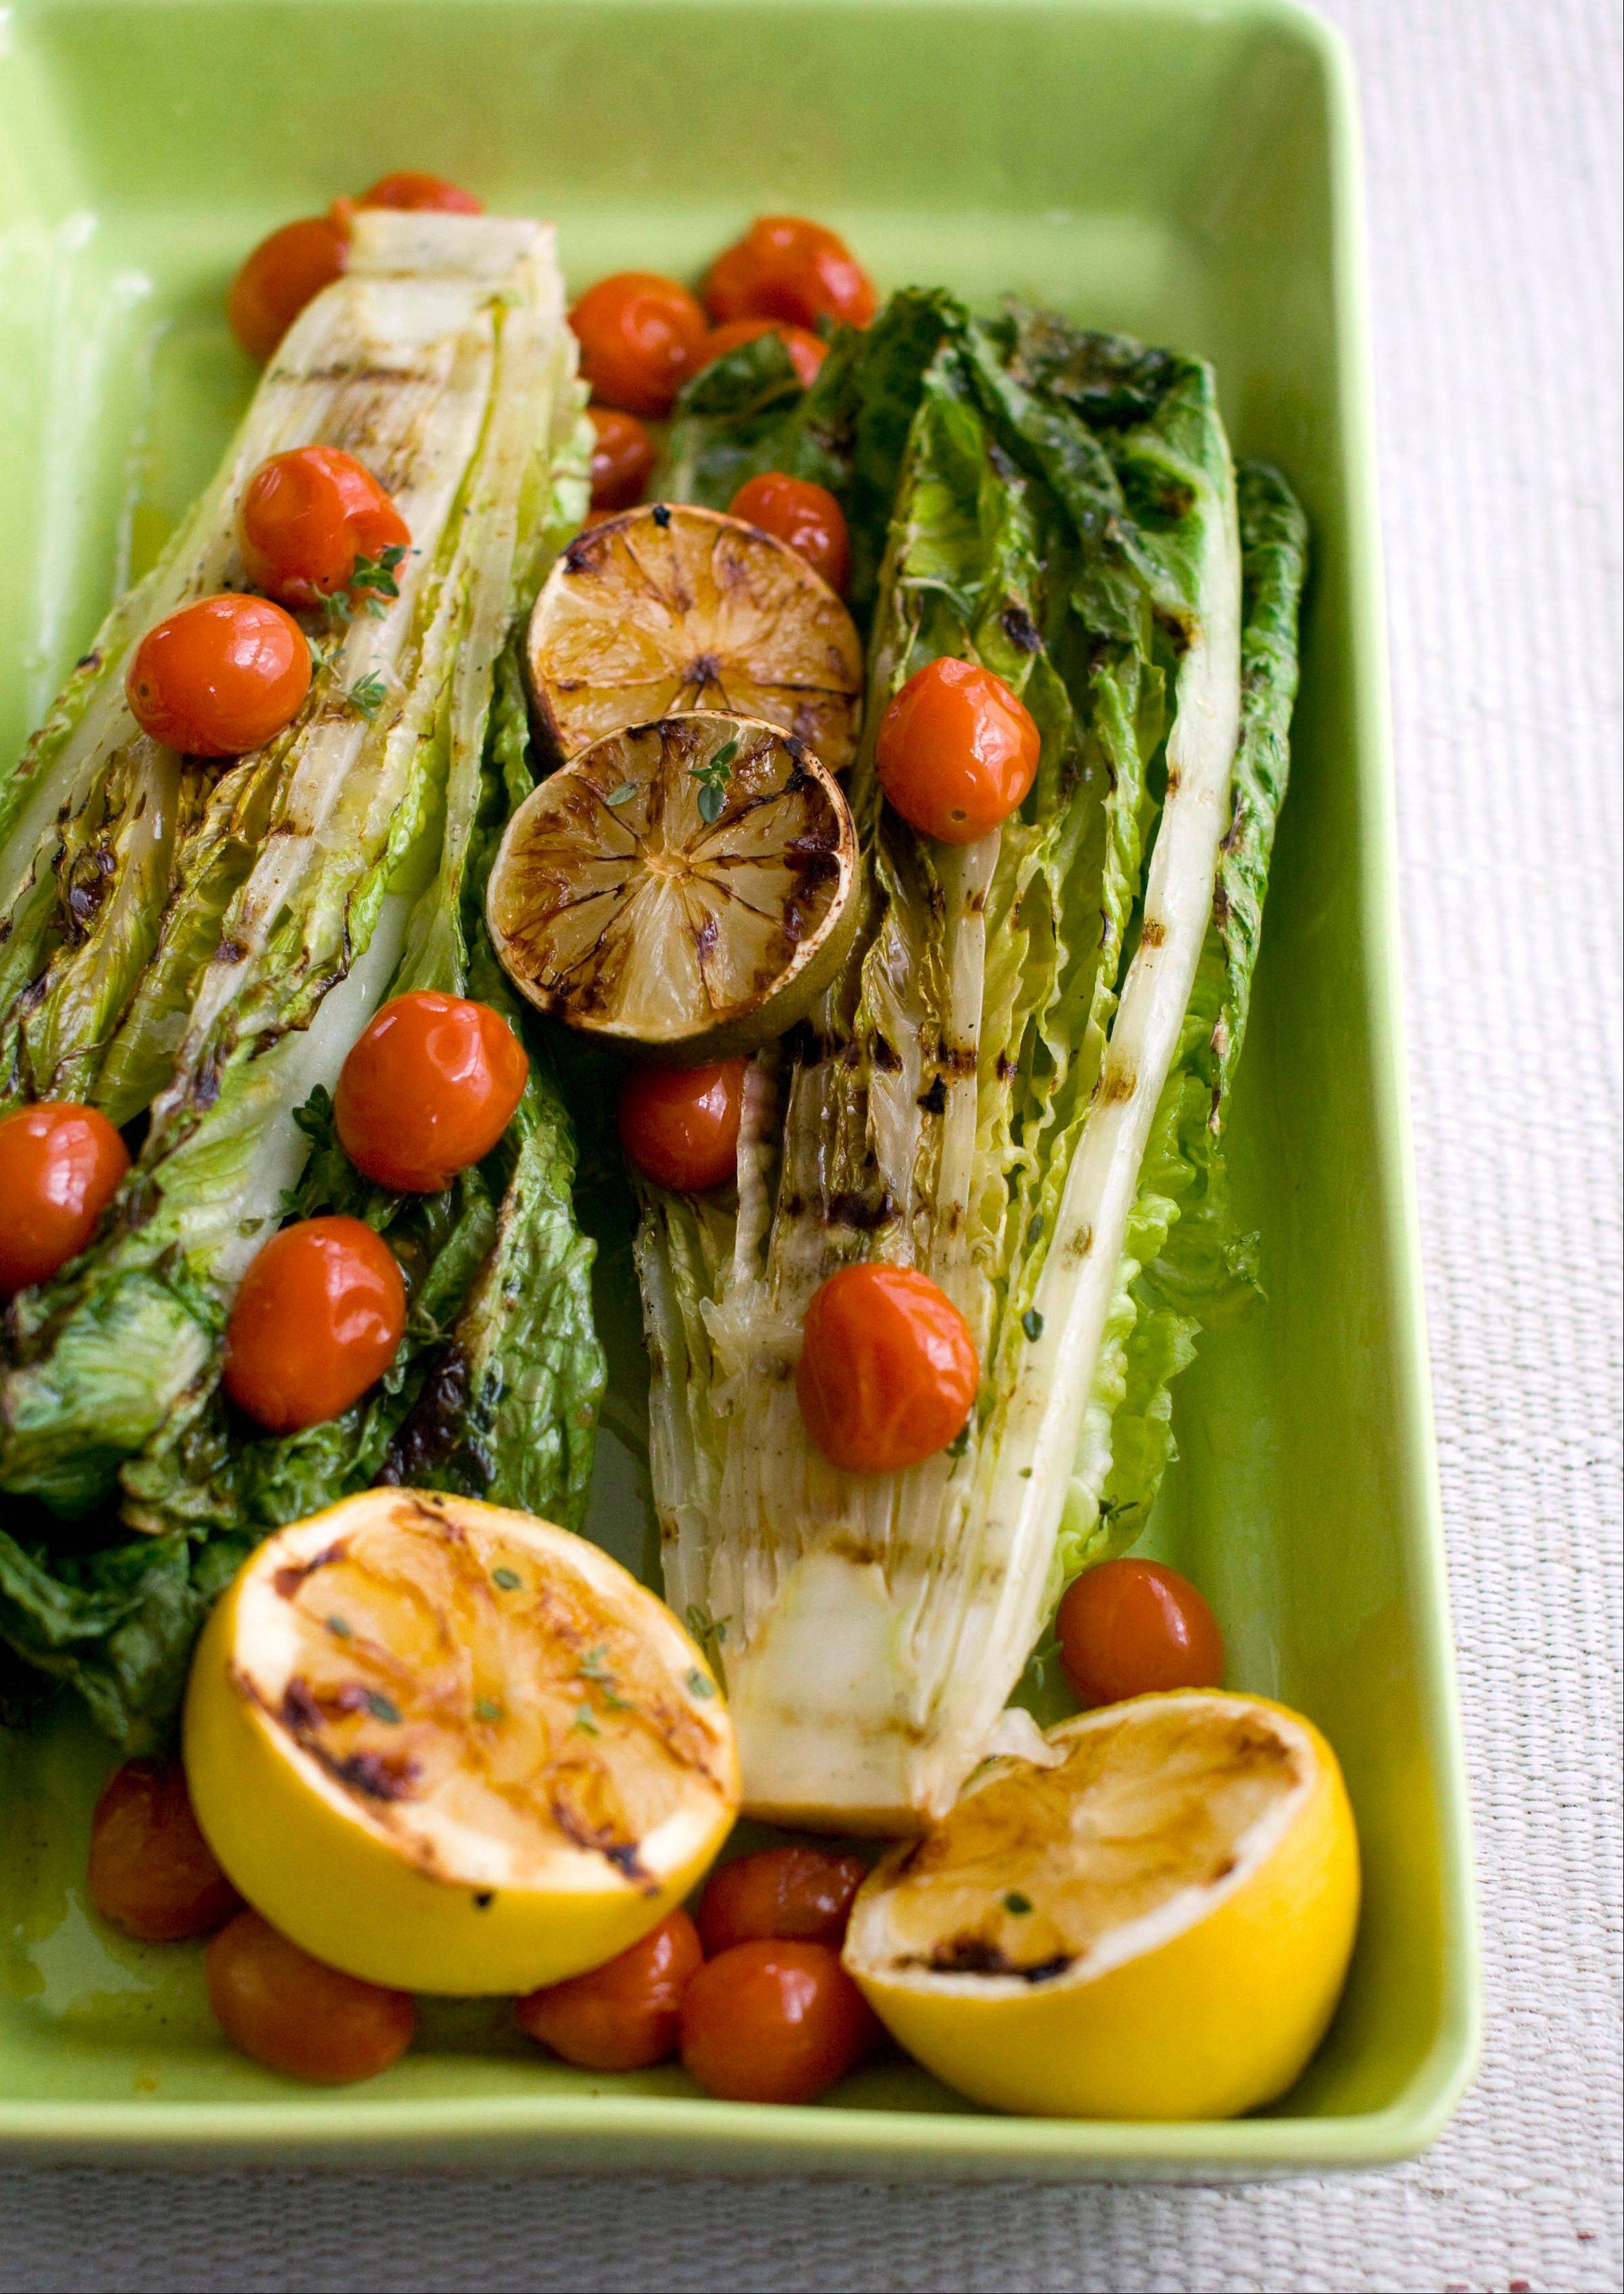 When firing up the grill for dinner, don�t overlook romaine and other greens that develop deep flavors after a few minutes over hot flames.